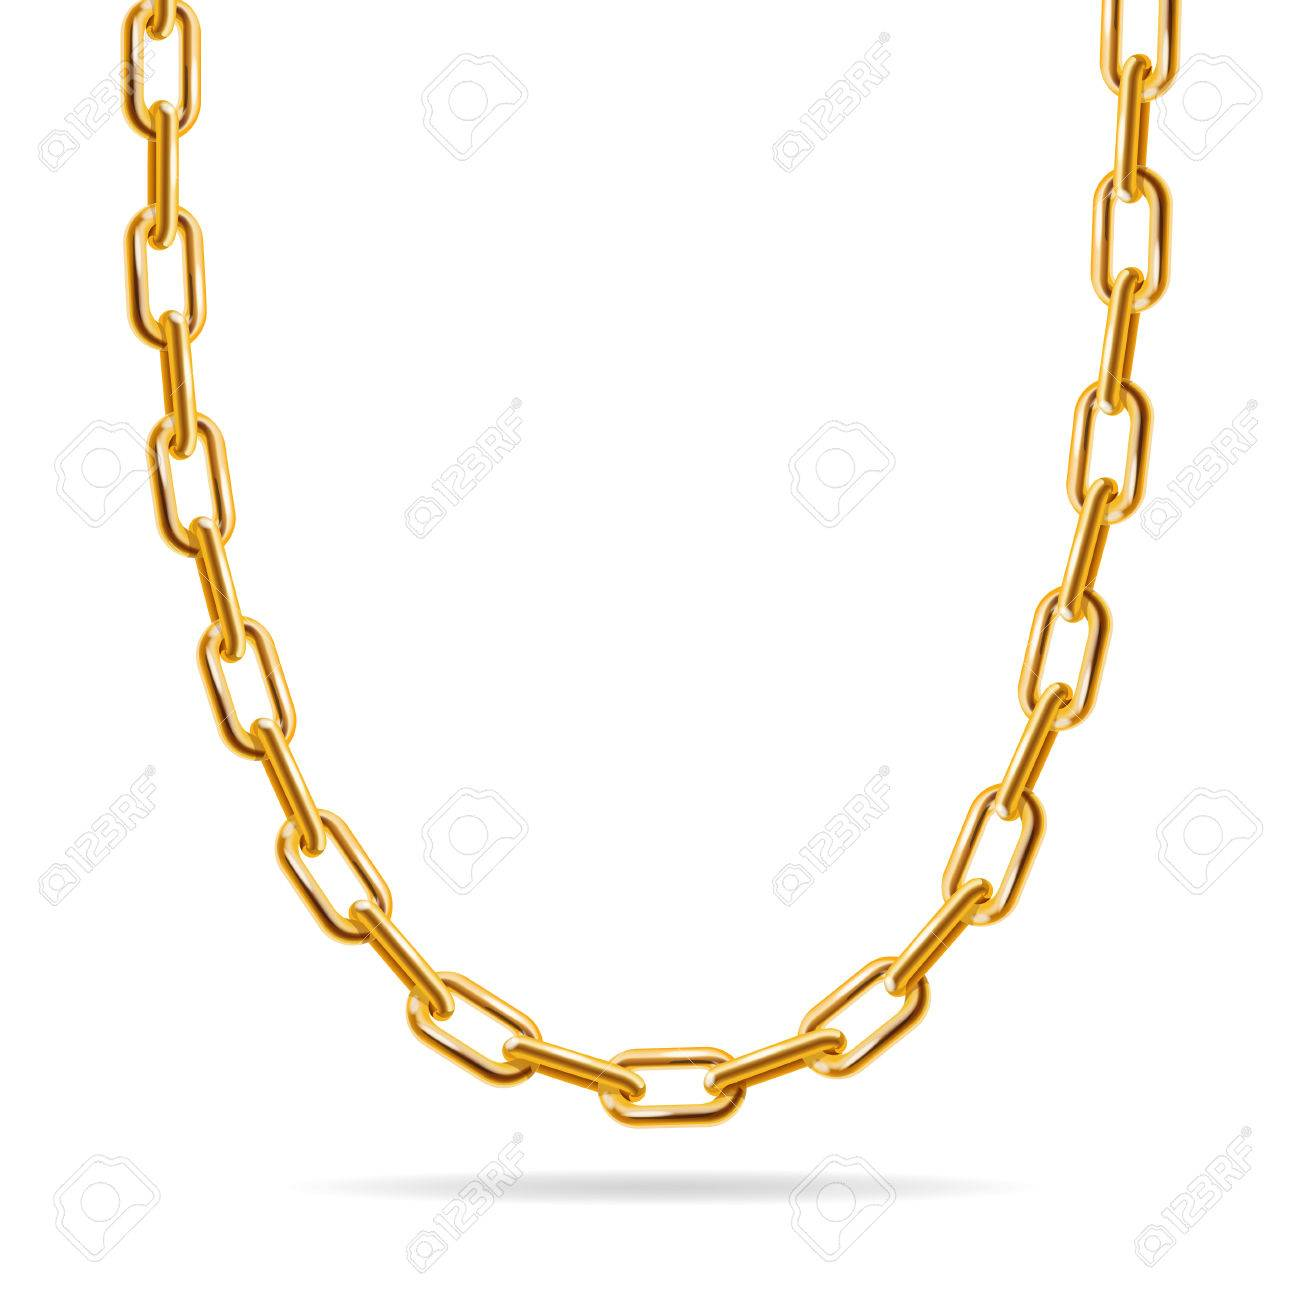 Gold Chain Fashion Design For Jewelry Vector Illustration Royalty Free Cliparts Vectors And Stock Illustration Image 50438584